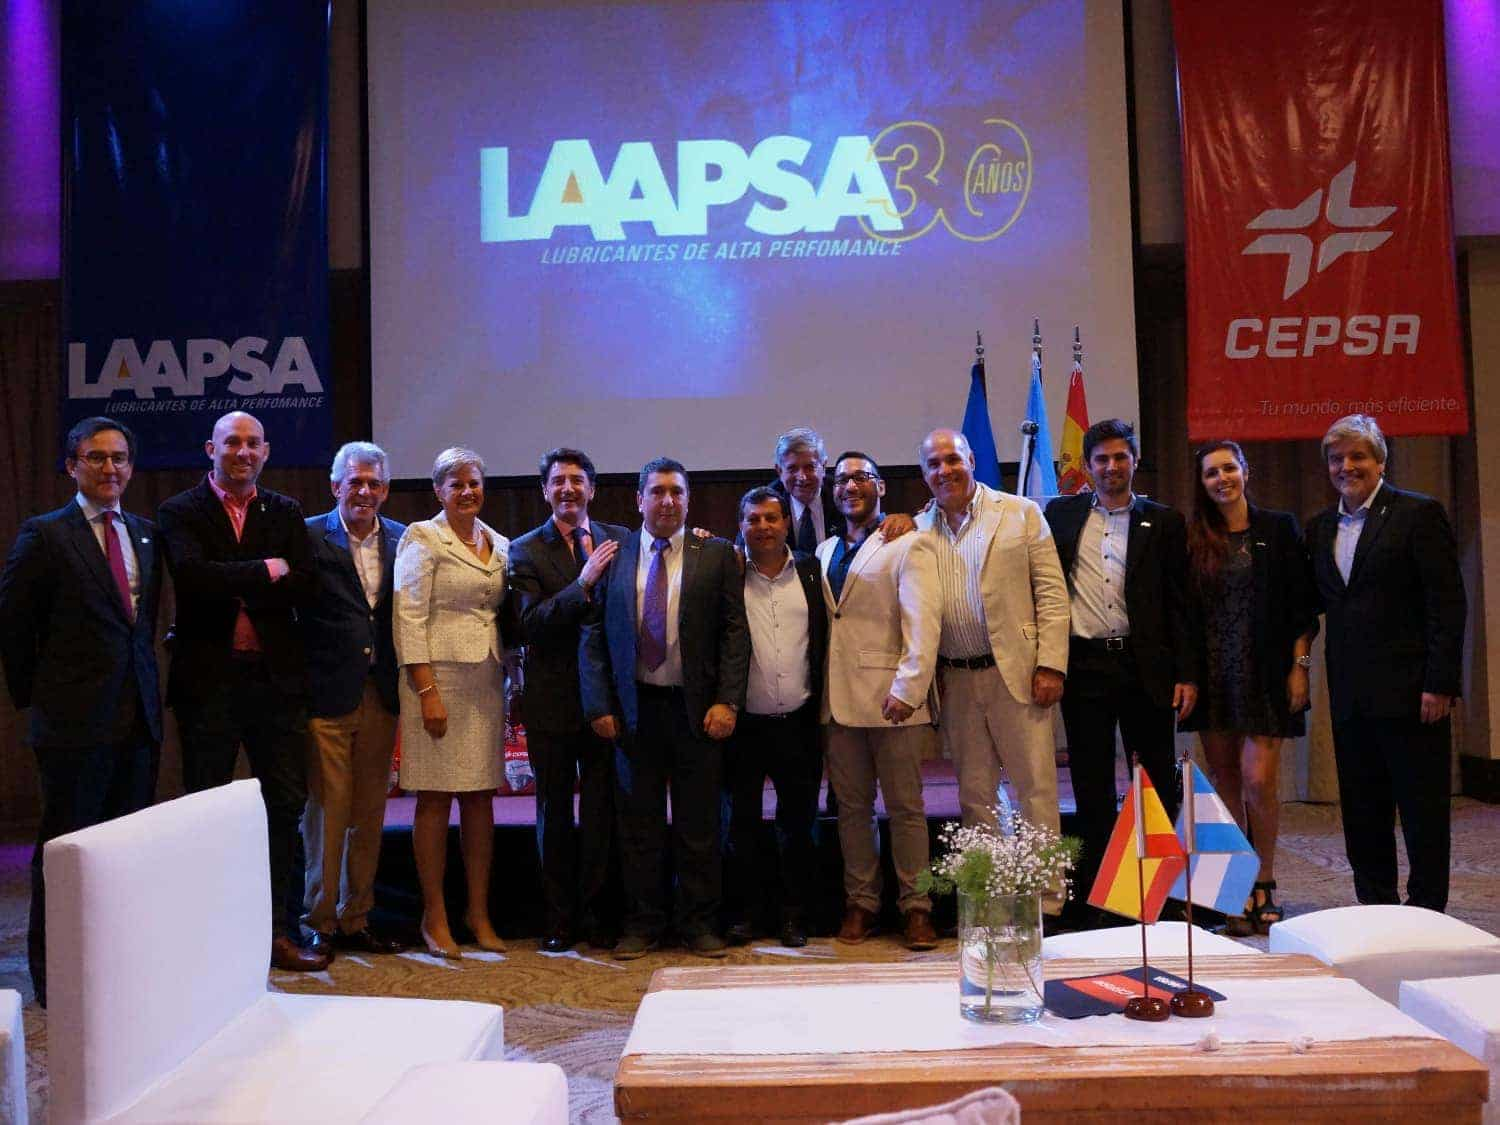 Representatives of Cepsa with their counterparts from LAAPSA at an event in Tigre (Buenos Aires)